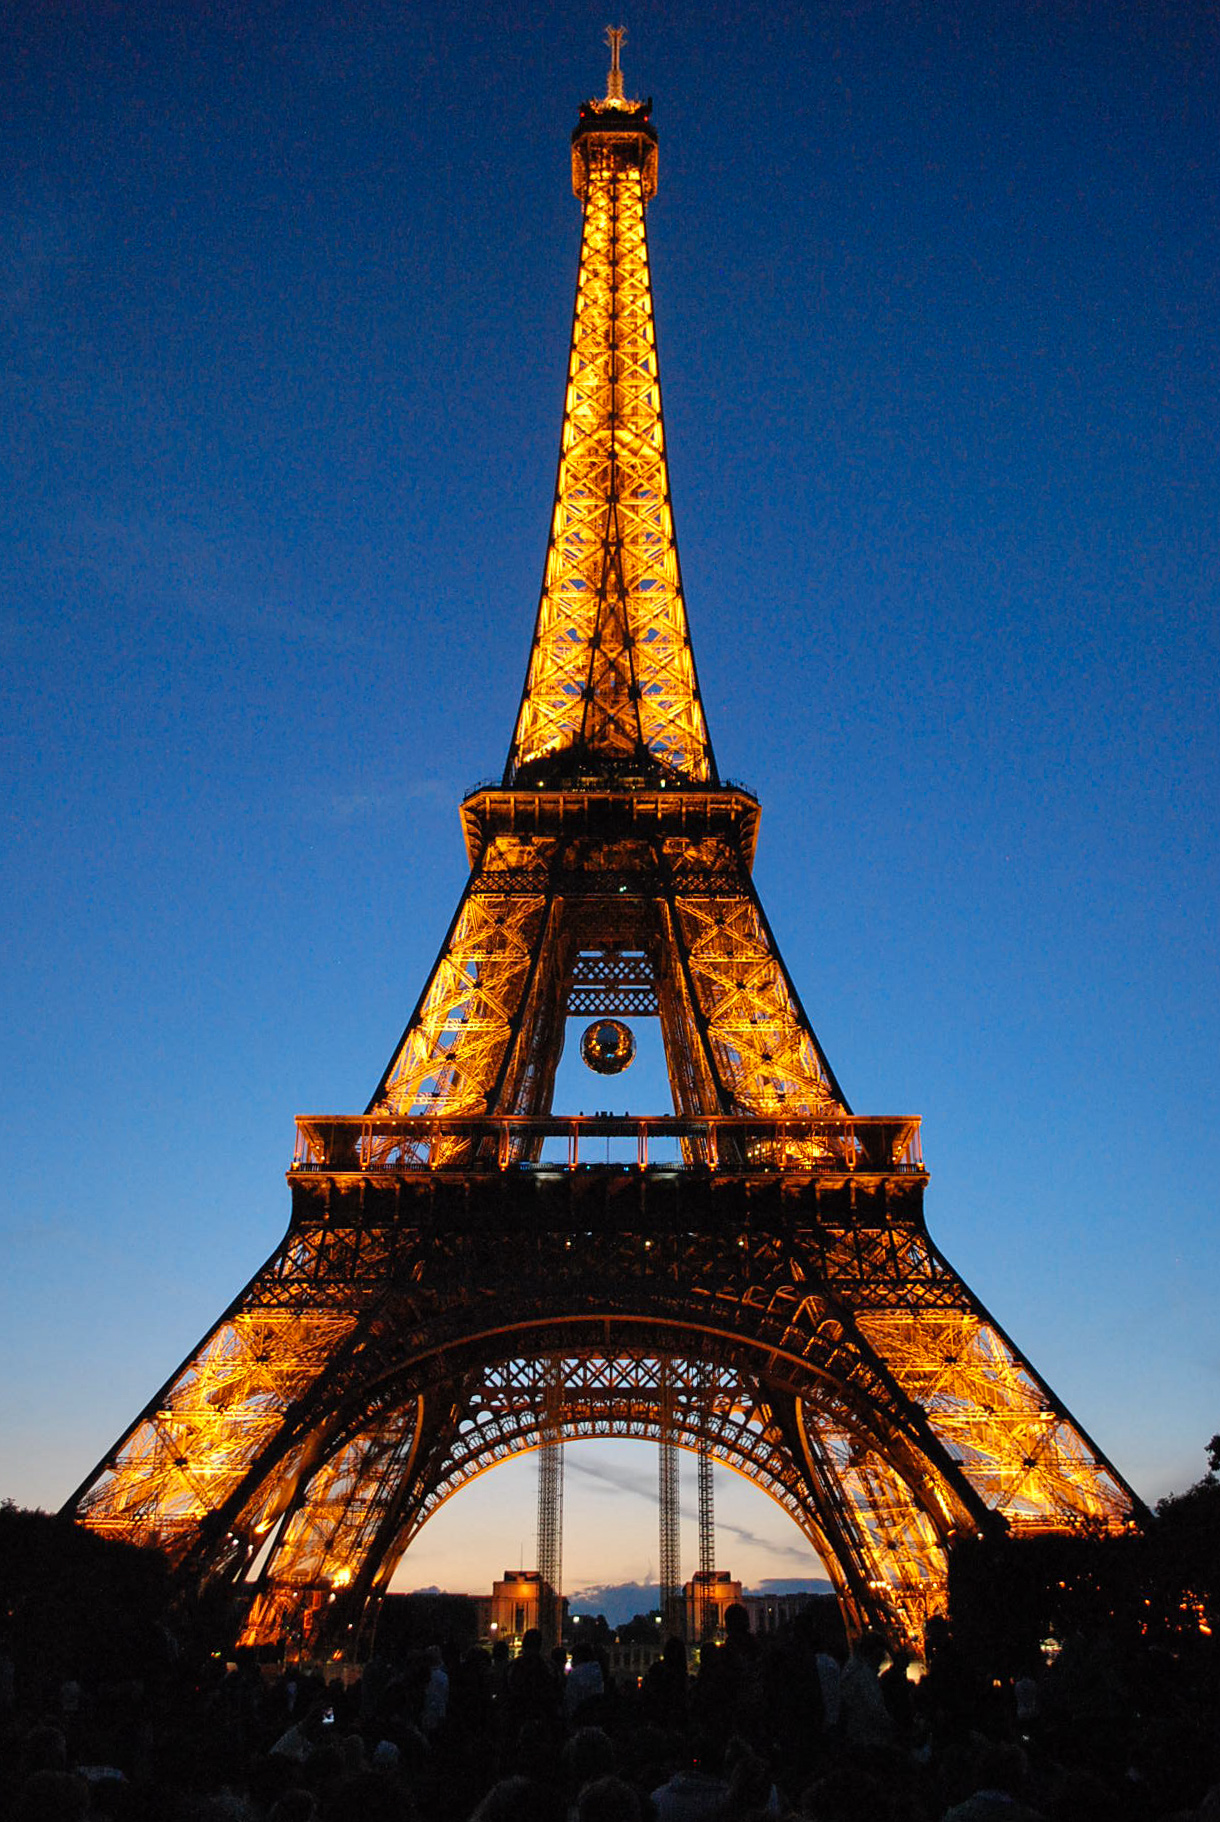 Eiffel Tower lit up at dusk seen on summer teen travel photography program